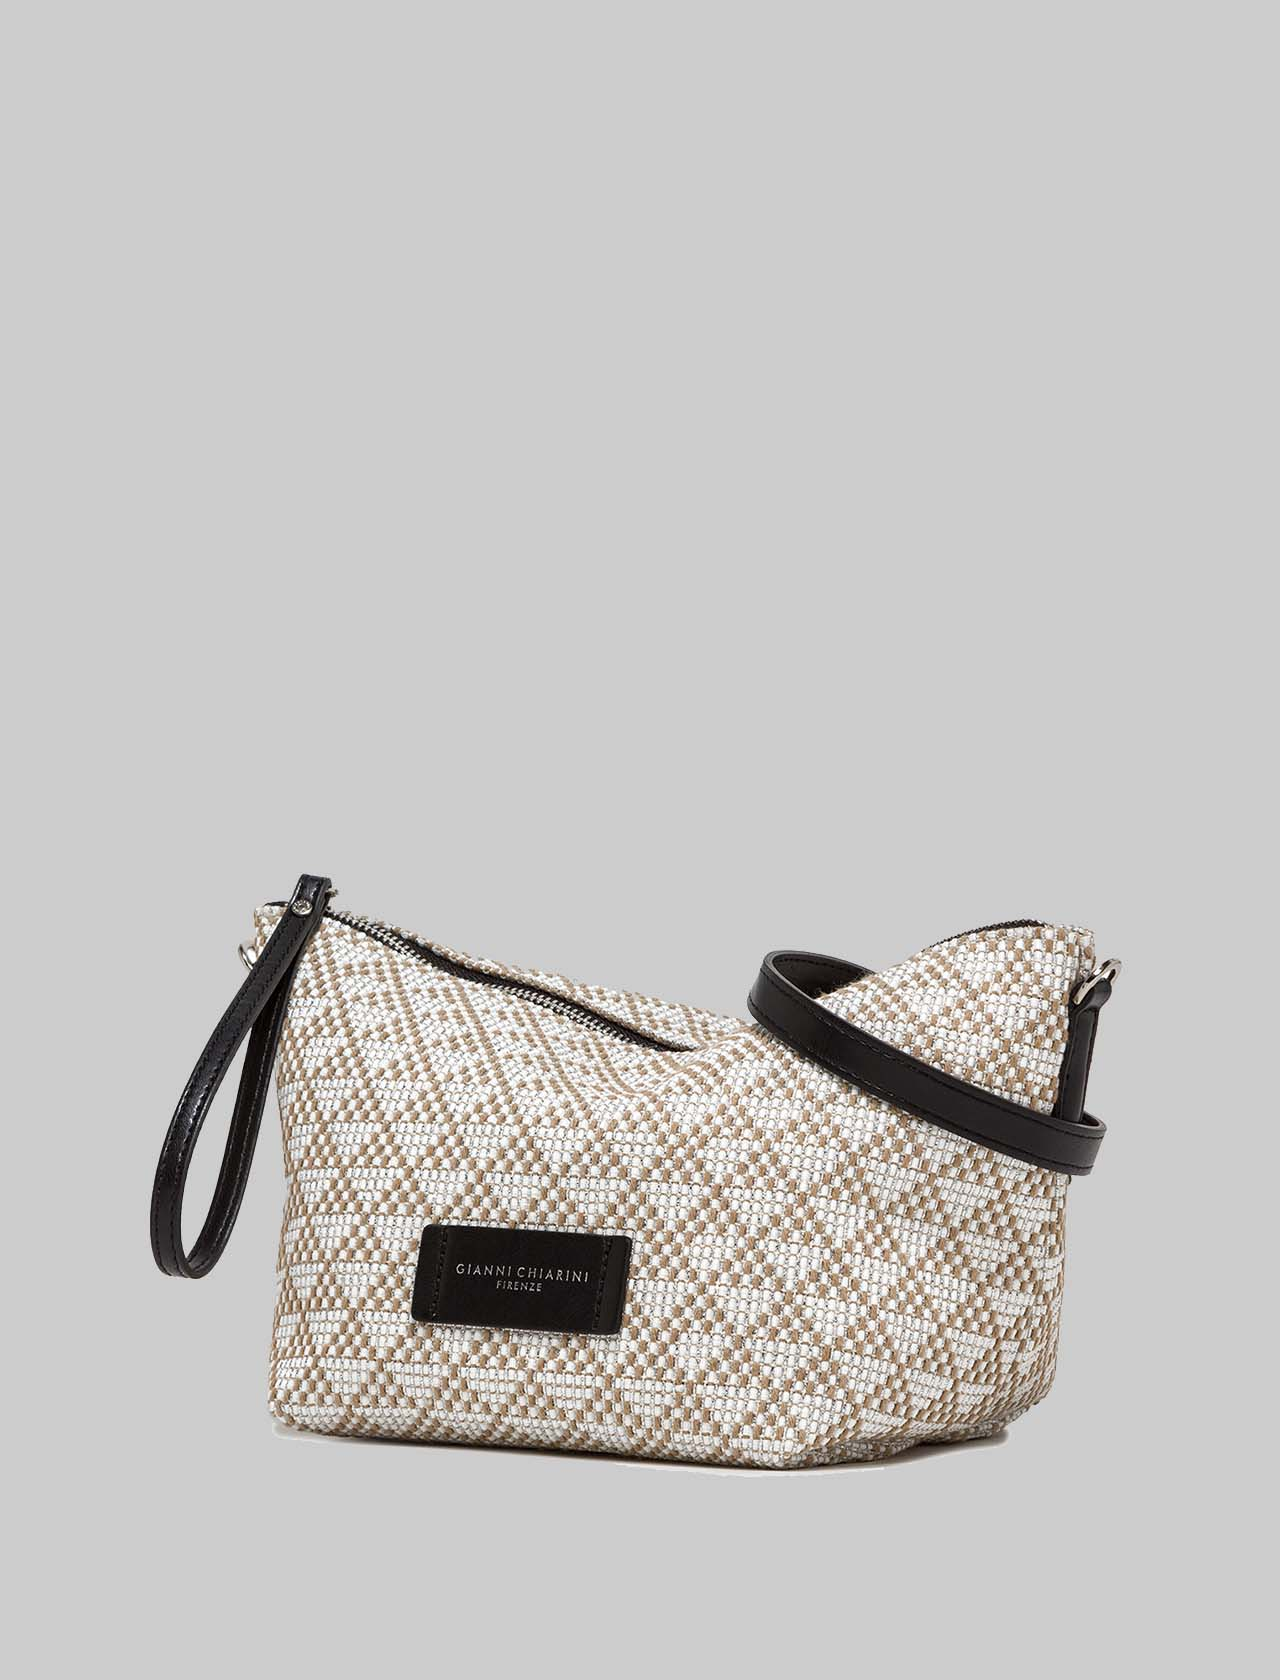 Women's Accessories Mini Empty Bags in Beige and Camel Fabric Gianni Chiarini | Bags and backpacks | SB8720009